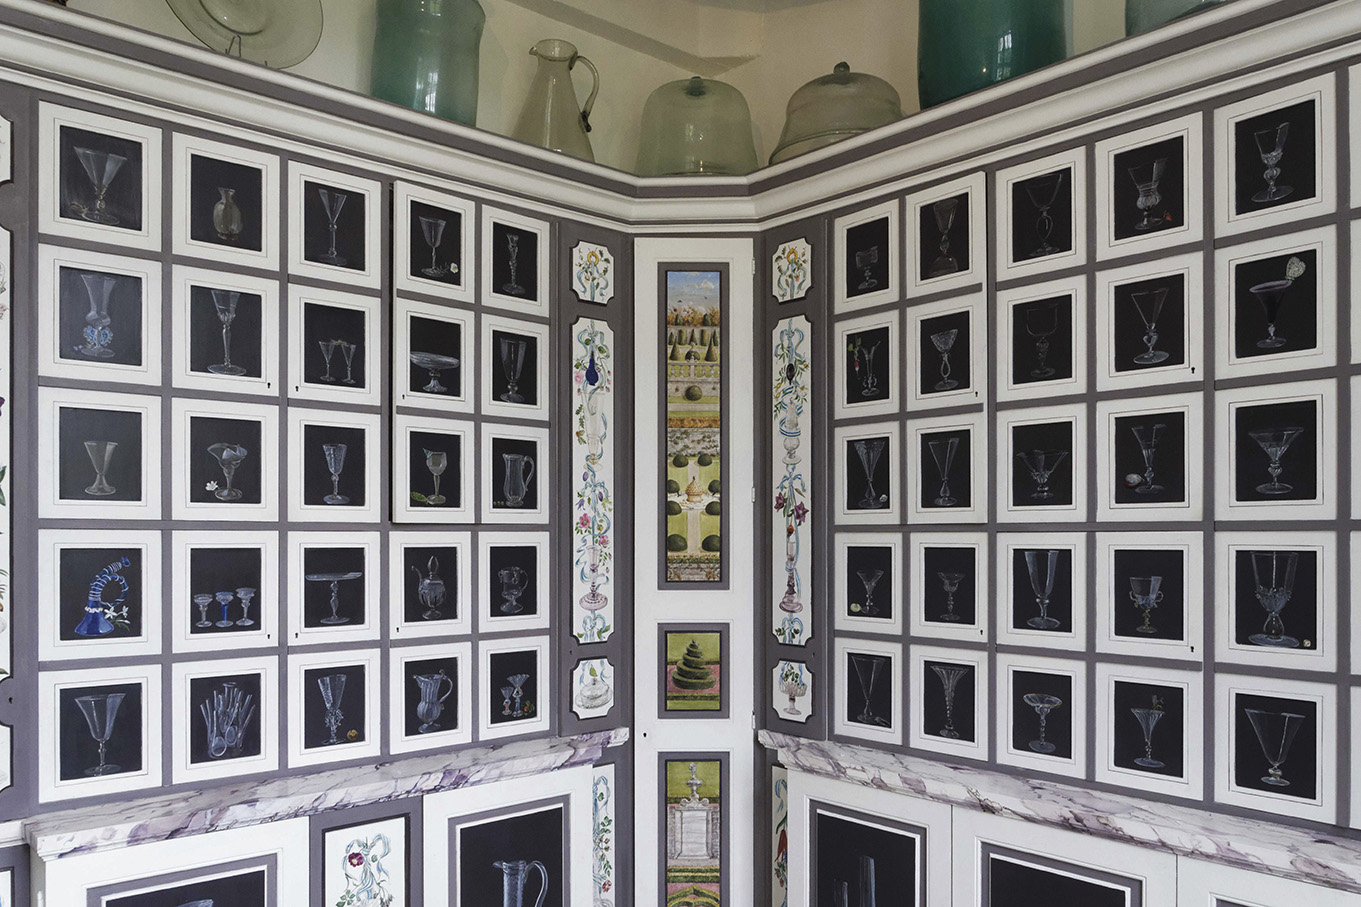 General view of the wood-panelled cabinet housing Barbara Wirth's antique glassware collection at the Château de Brécy.